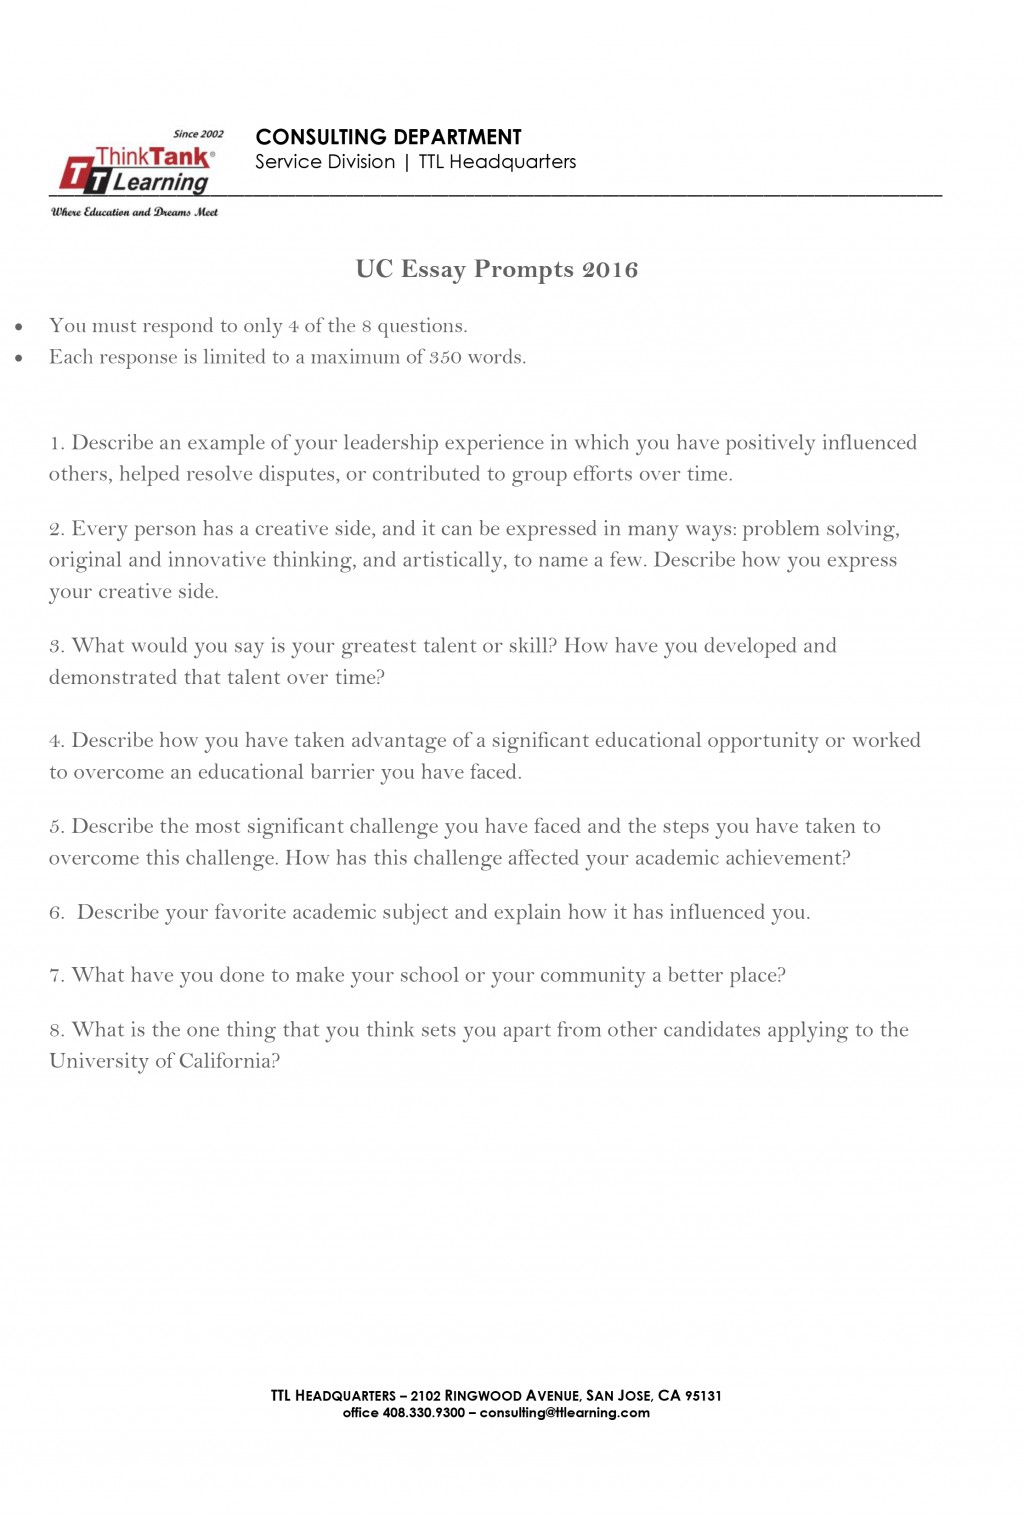 014 Uc Essay 2016 2 Example Application Imposing Prompts 2015 2016-17 Examples Berkeley Large